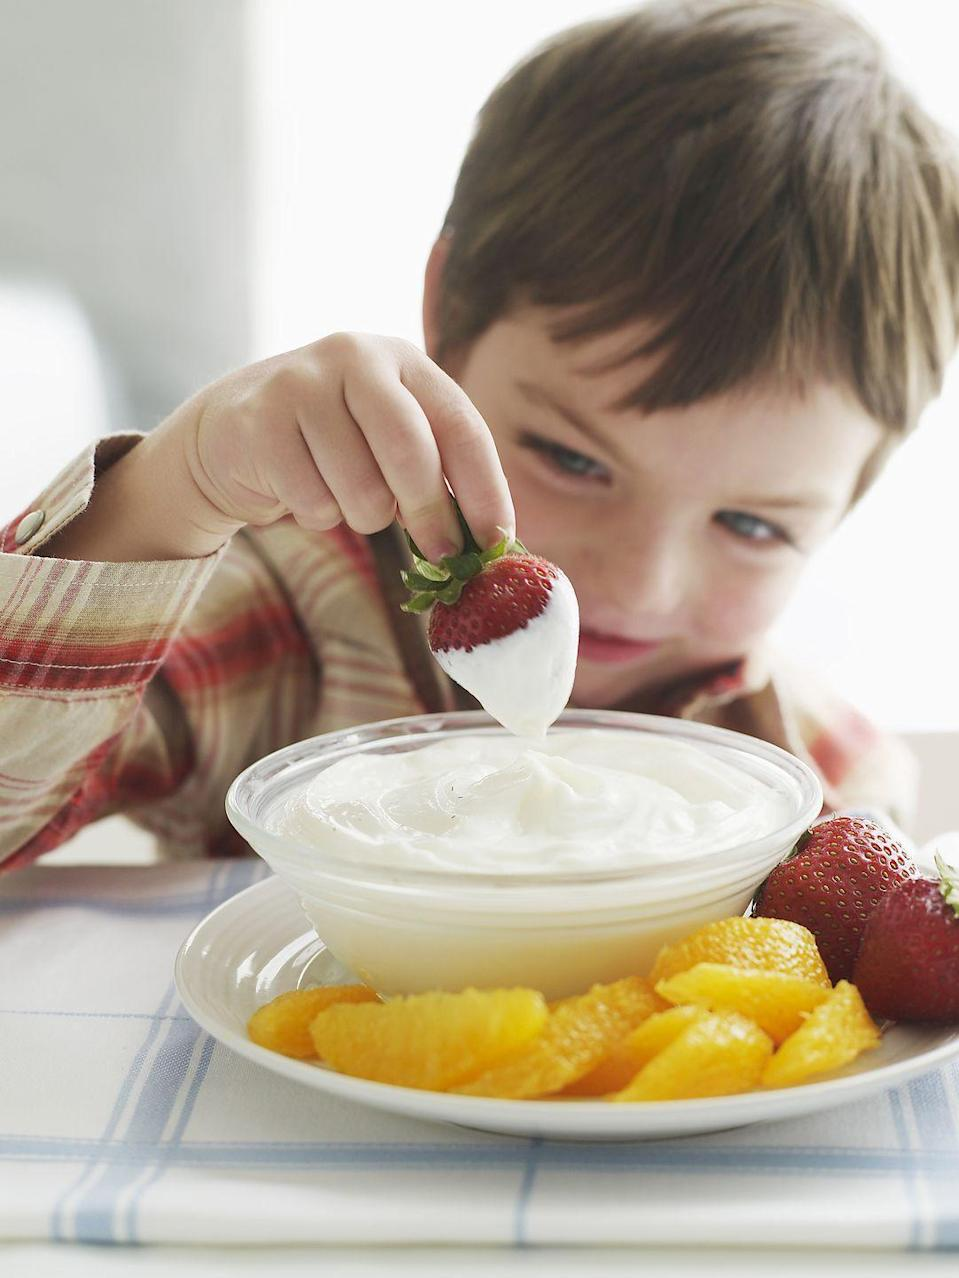 <p>Grab a portion controlled handful of pretzels or a few pieces of fruit and <strong>dip it into yogurt for a far less sugary option </strong>than the yogurt candy chip varieties.</p>